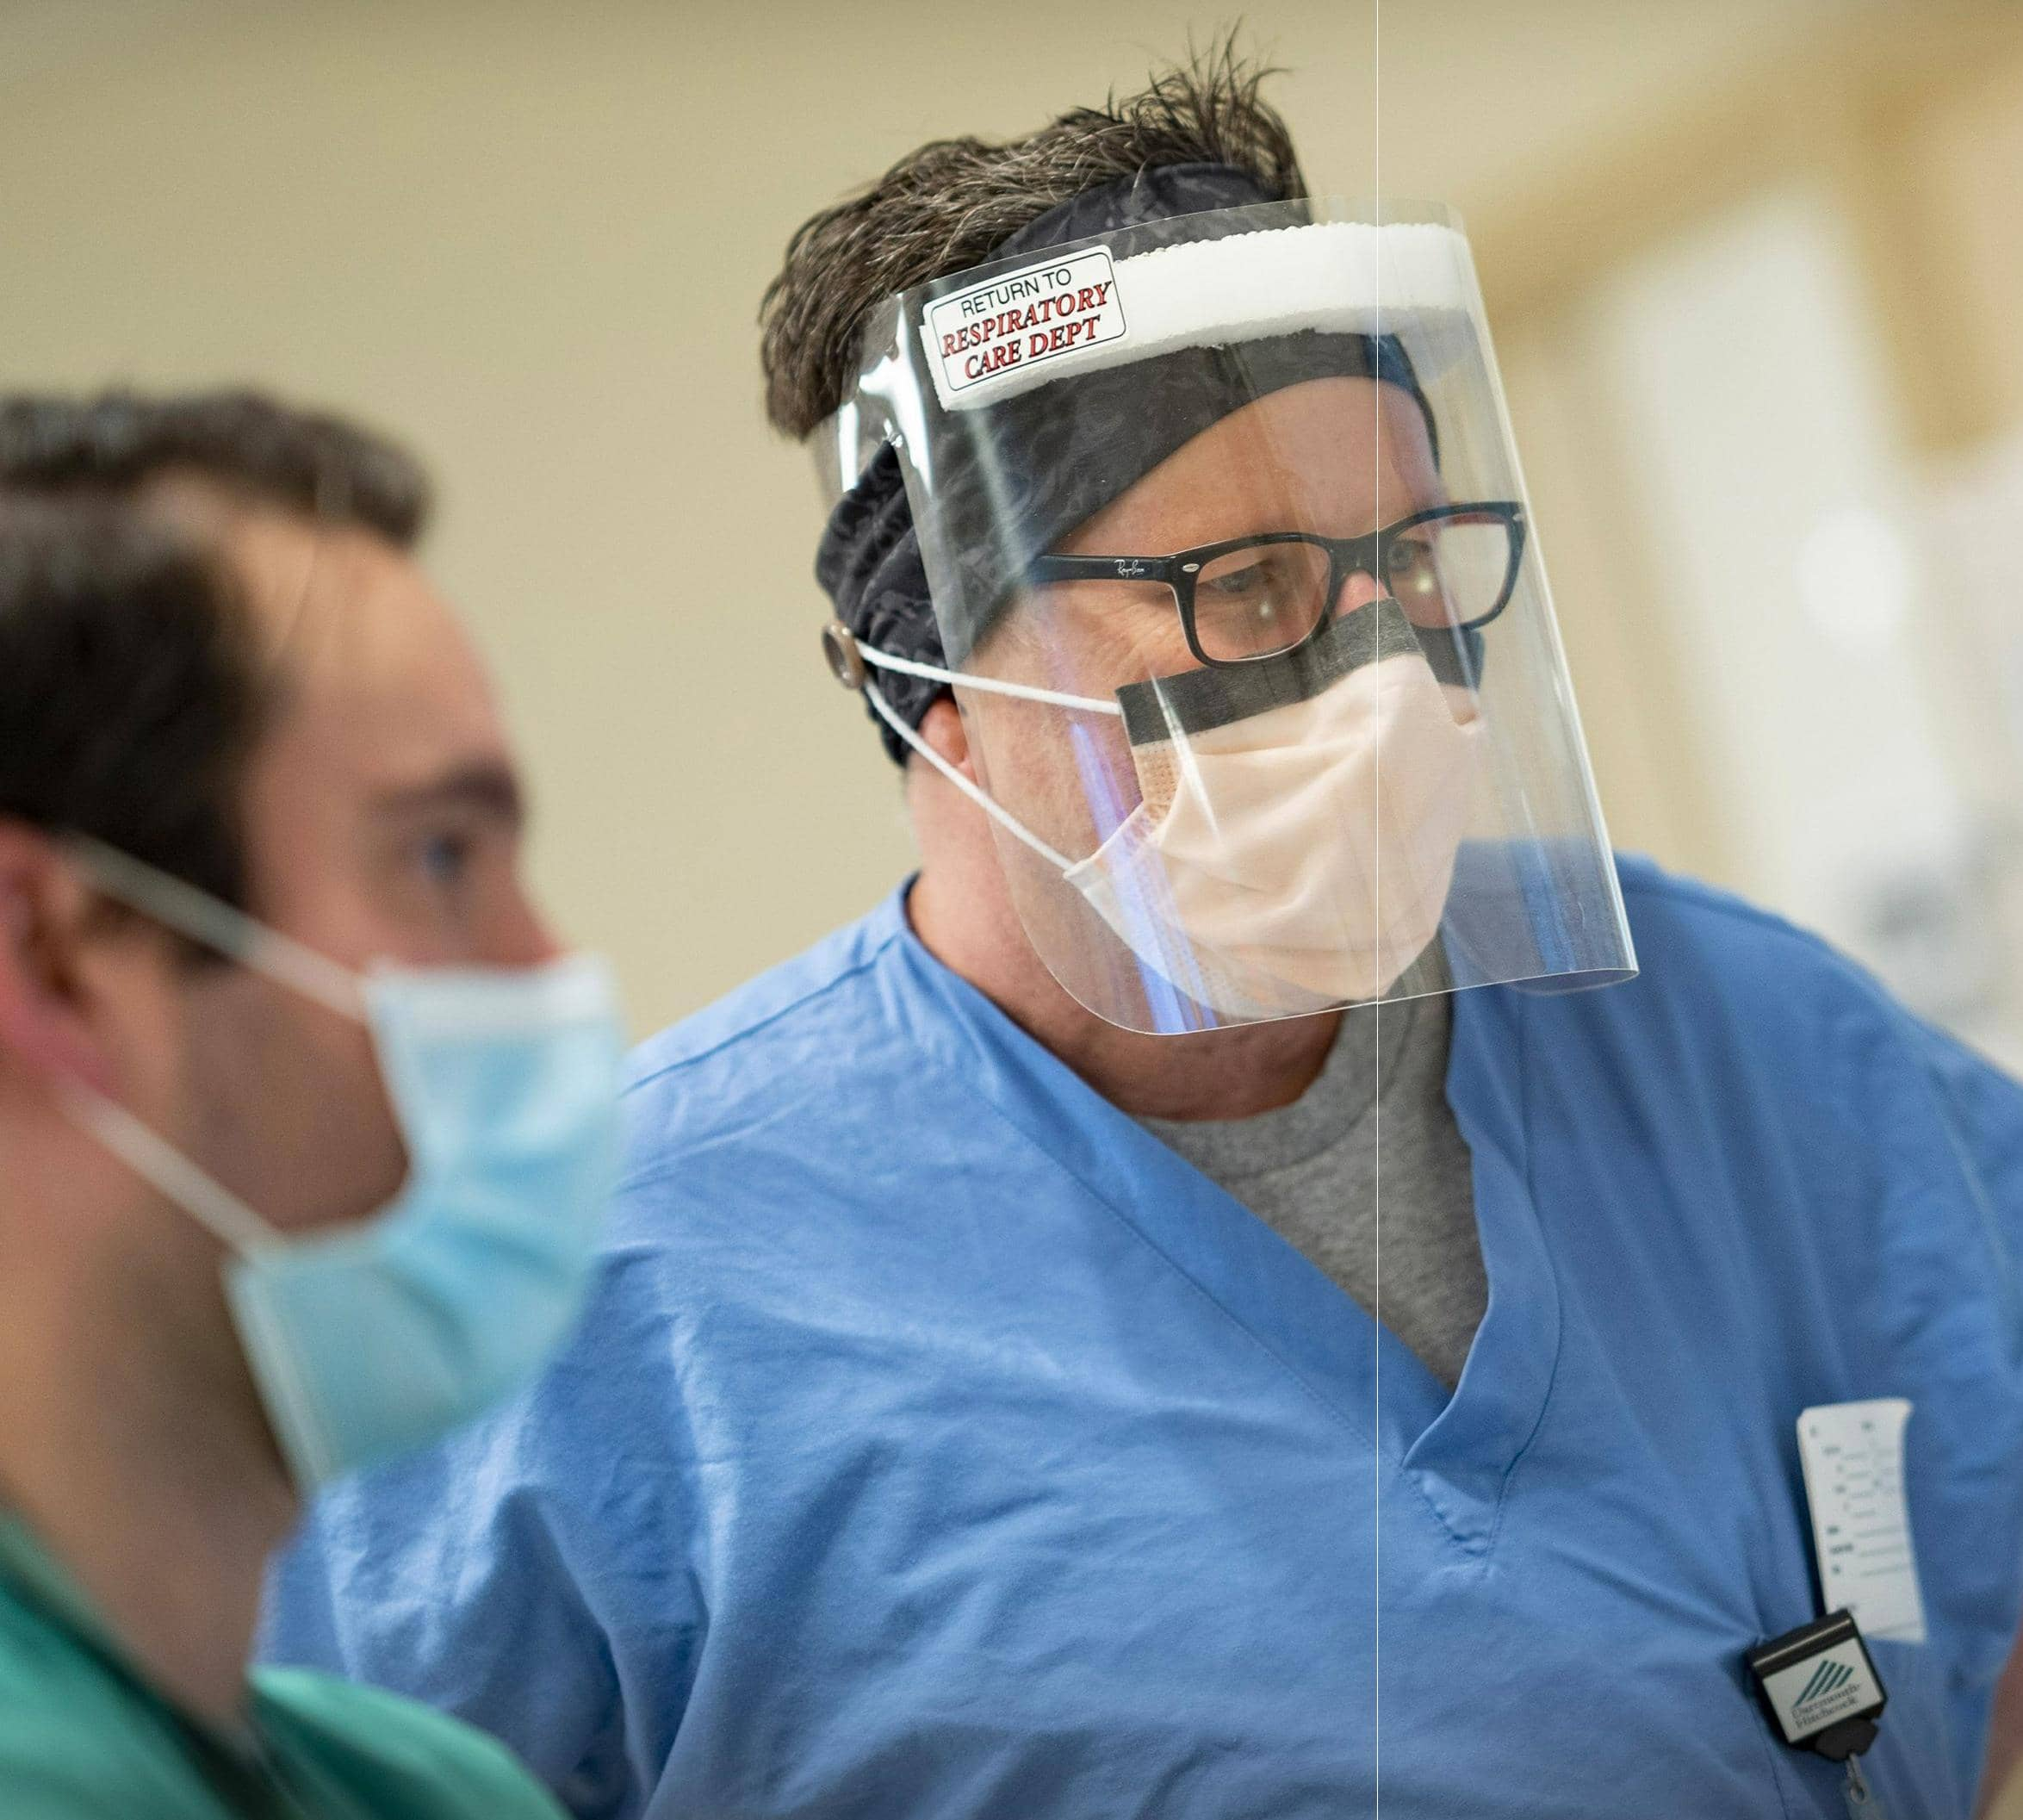 HOSPITALS TURN TO ONLINE MATCHMAKERS TO SWAP SUPPLIES